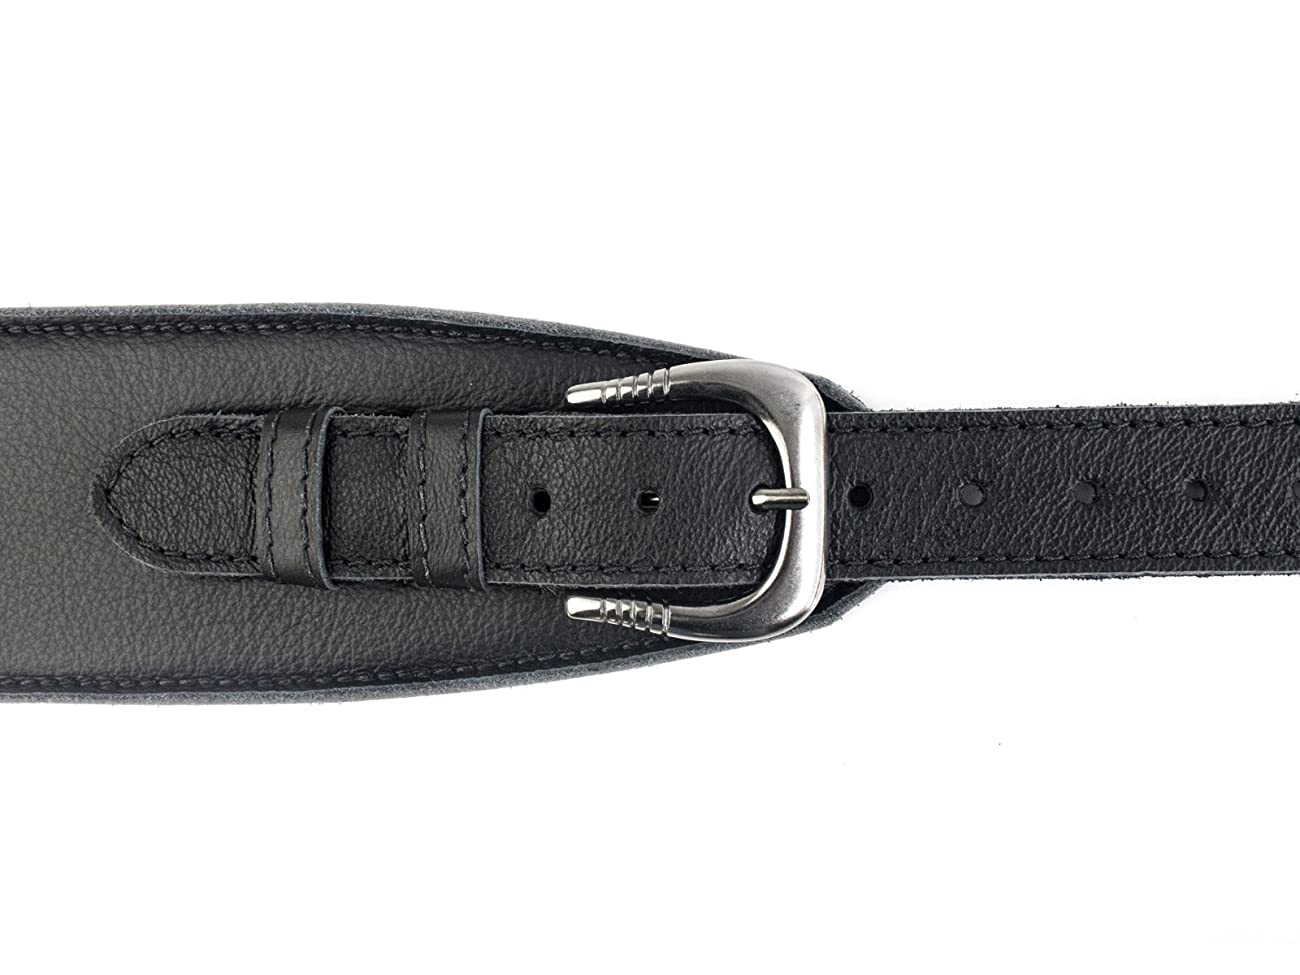 UK Made Black Vintage Extra Wide Soft Real Leather Guitar Strap with Buckle Adjustable Length 4